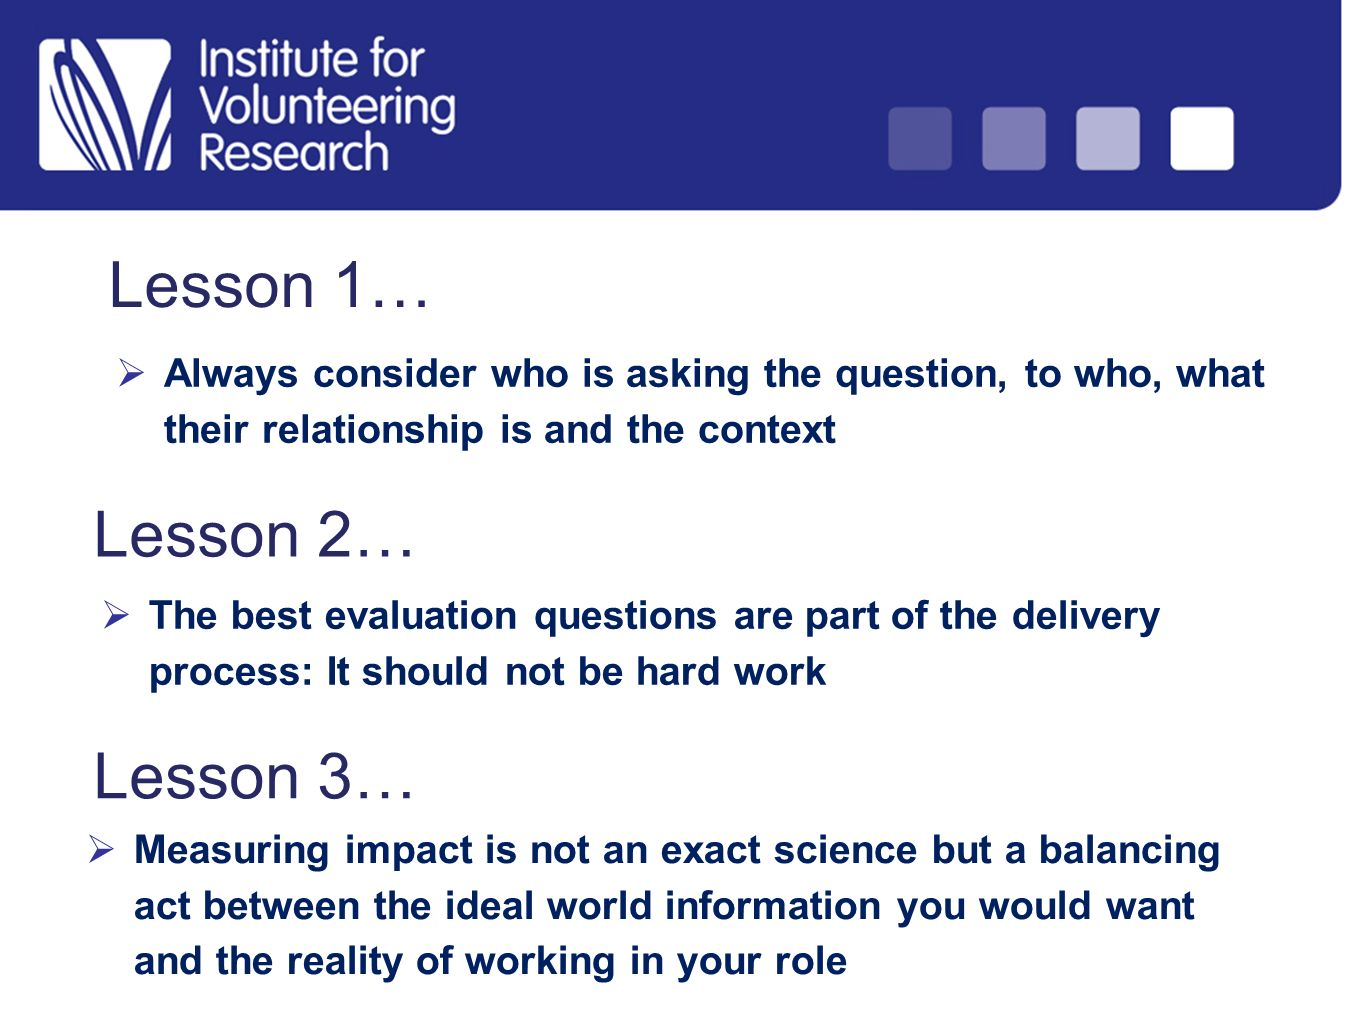 Lesson 1… Always consider who is asking the question, to who, what their relationship is and the context Lesson 2… The best evaluation questions are part of the delivery process: It should not be hard work Lesson 3… Measuring impact is not an exact science but a balancing act between the ideal world information you would want and the reality of working in your role